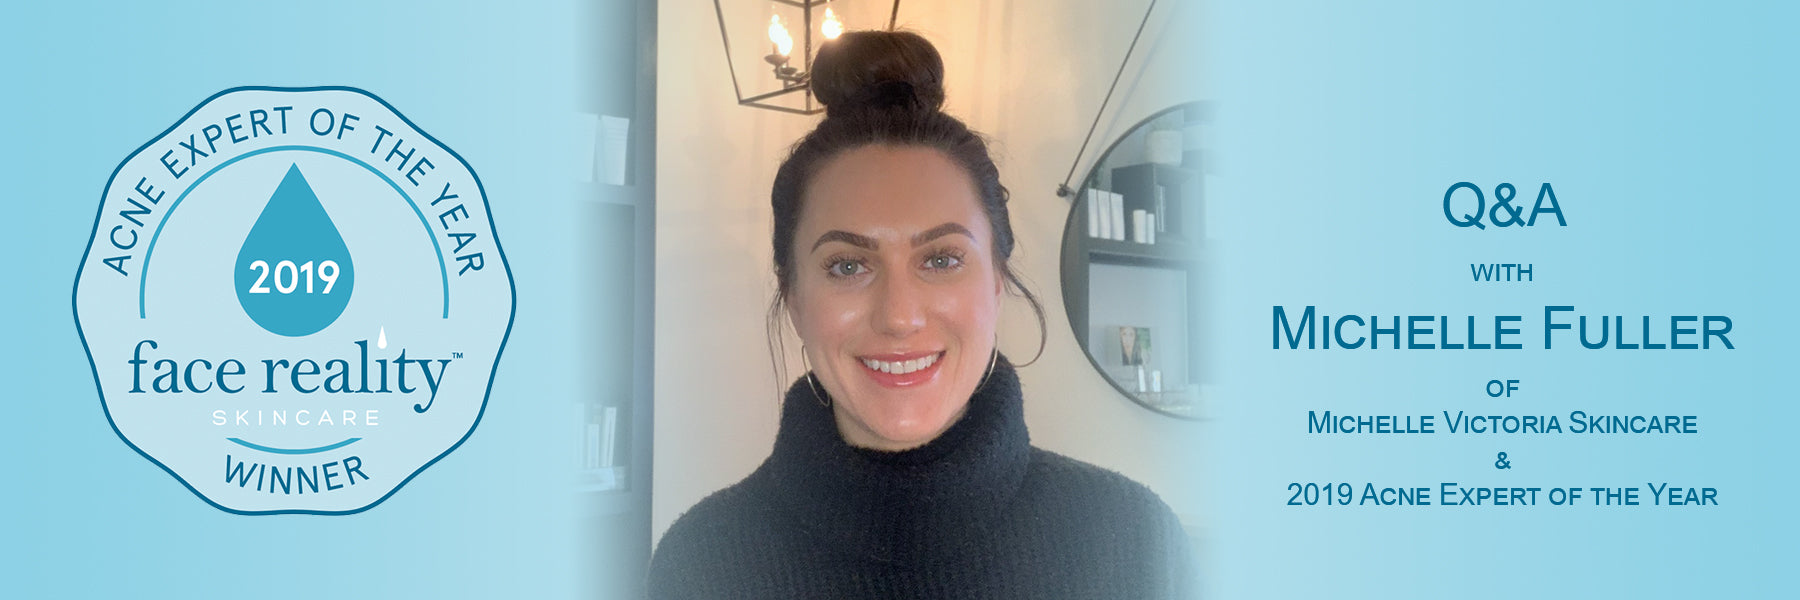 Q&A with Michelle Fuller, 2019 Acne Expert of the Year